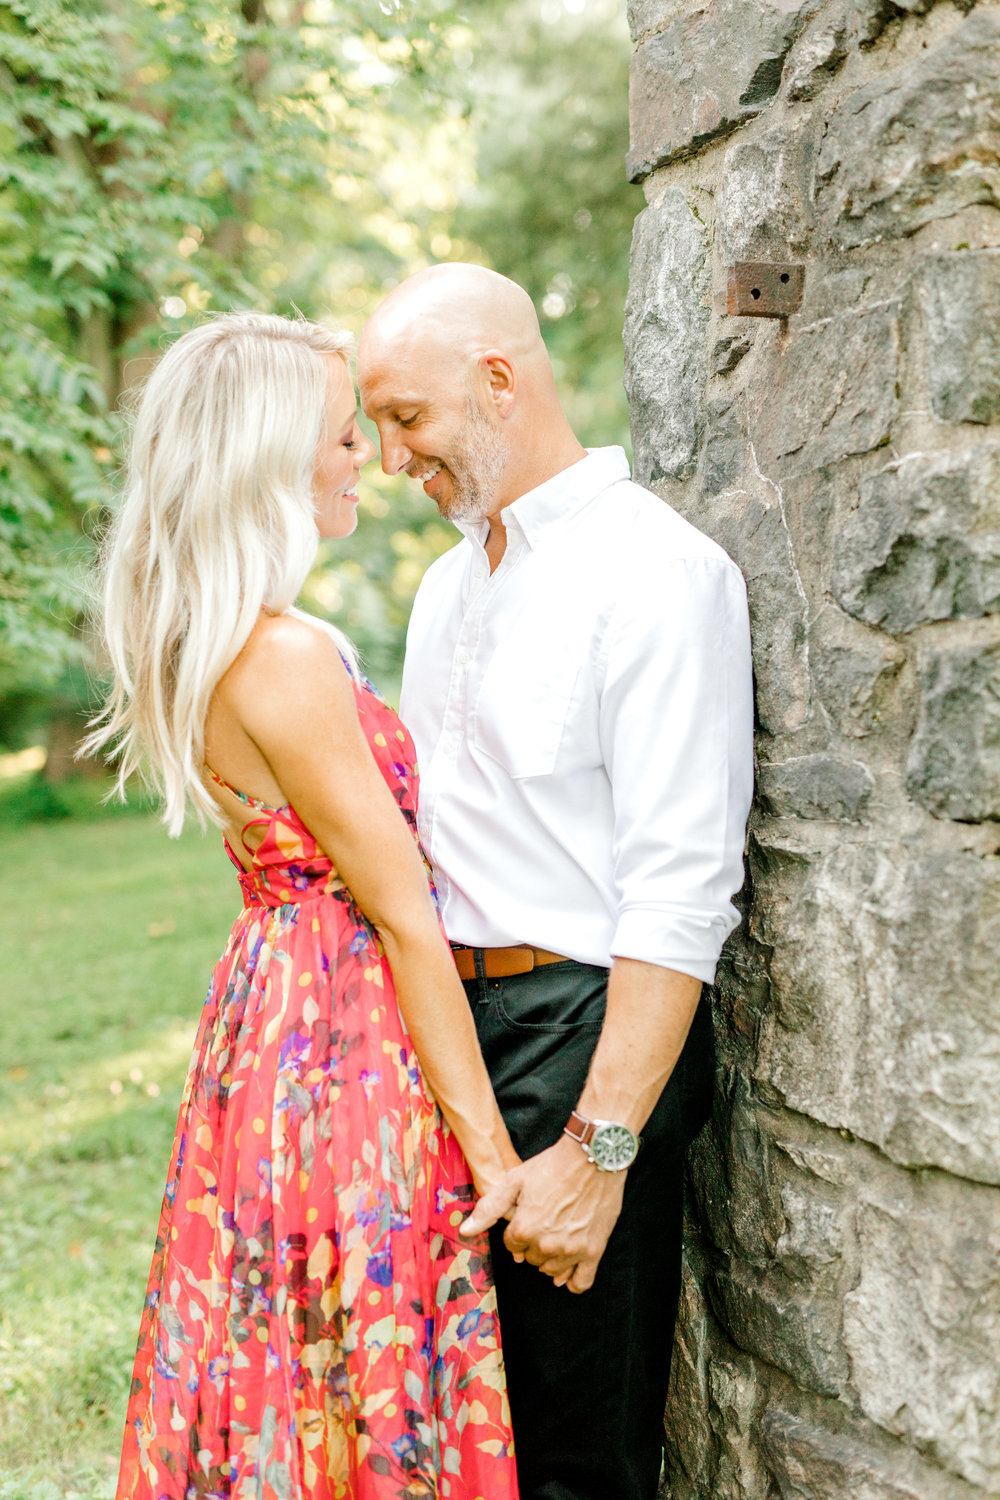 All snuggled up, we love the way Liz's bright red dress pairs with Bill's neutral color palette of black and white. The pop of floral print in the dress brings this classic color combo right into the summer for their romantic sunset woodland engagement session at Parque at Ridley Creek